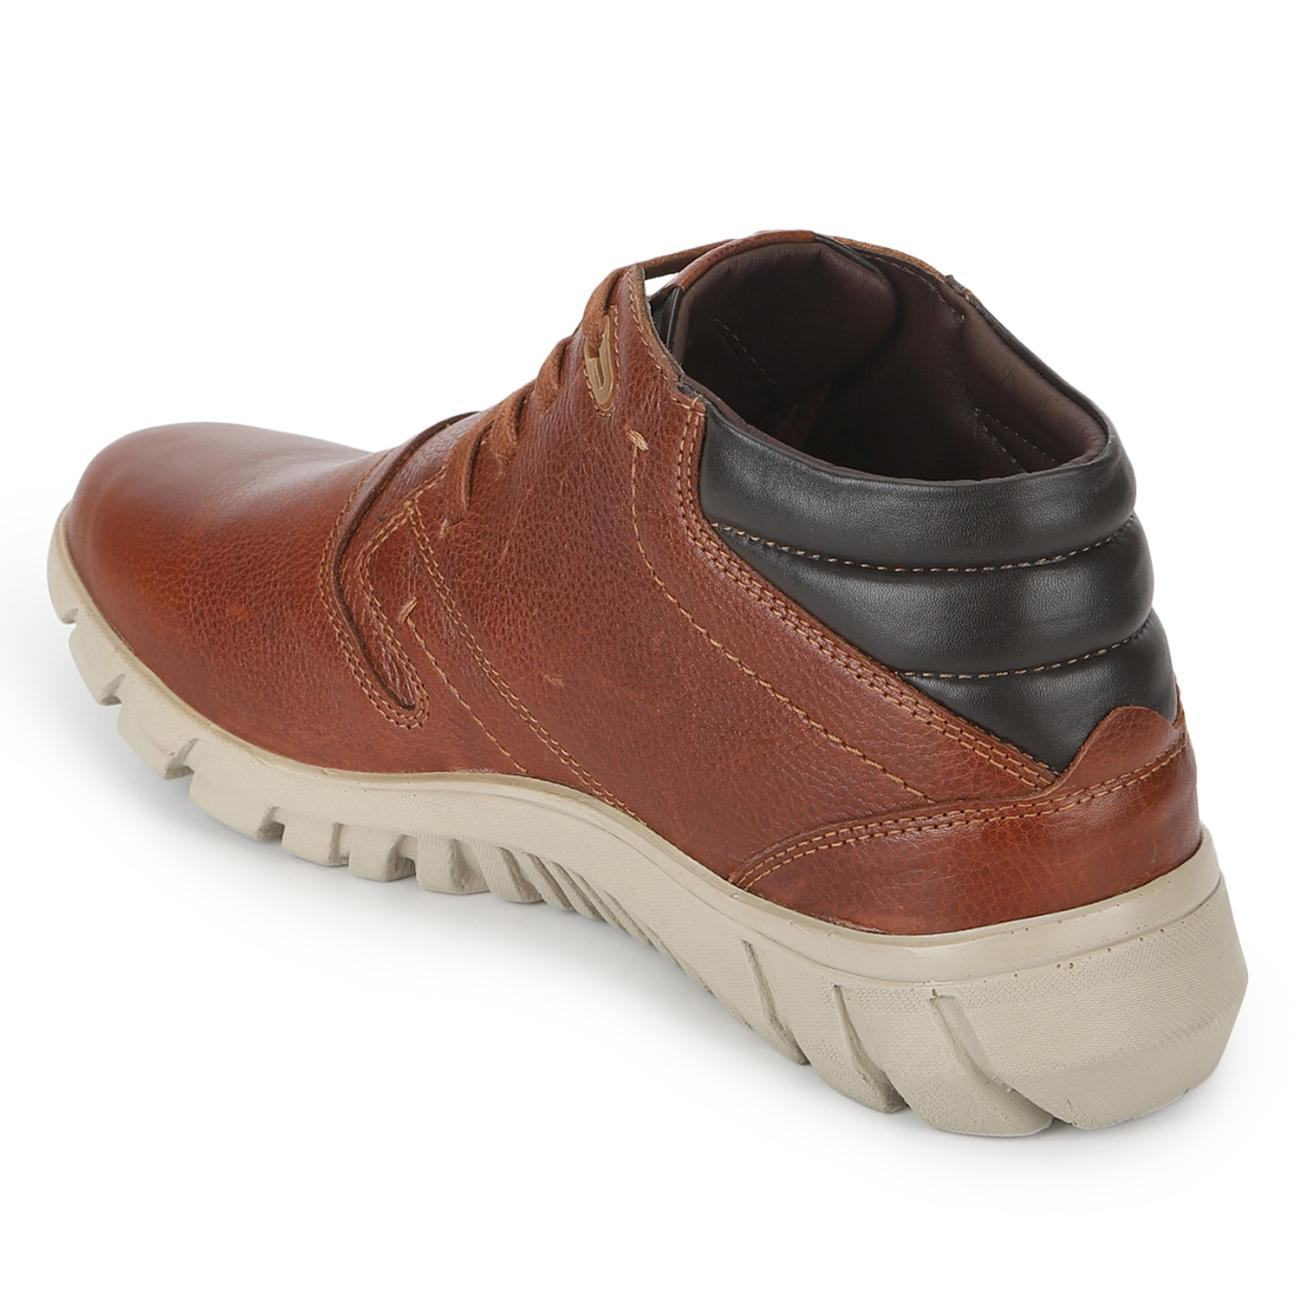 tan casual derby shoes top view